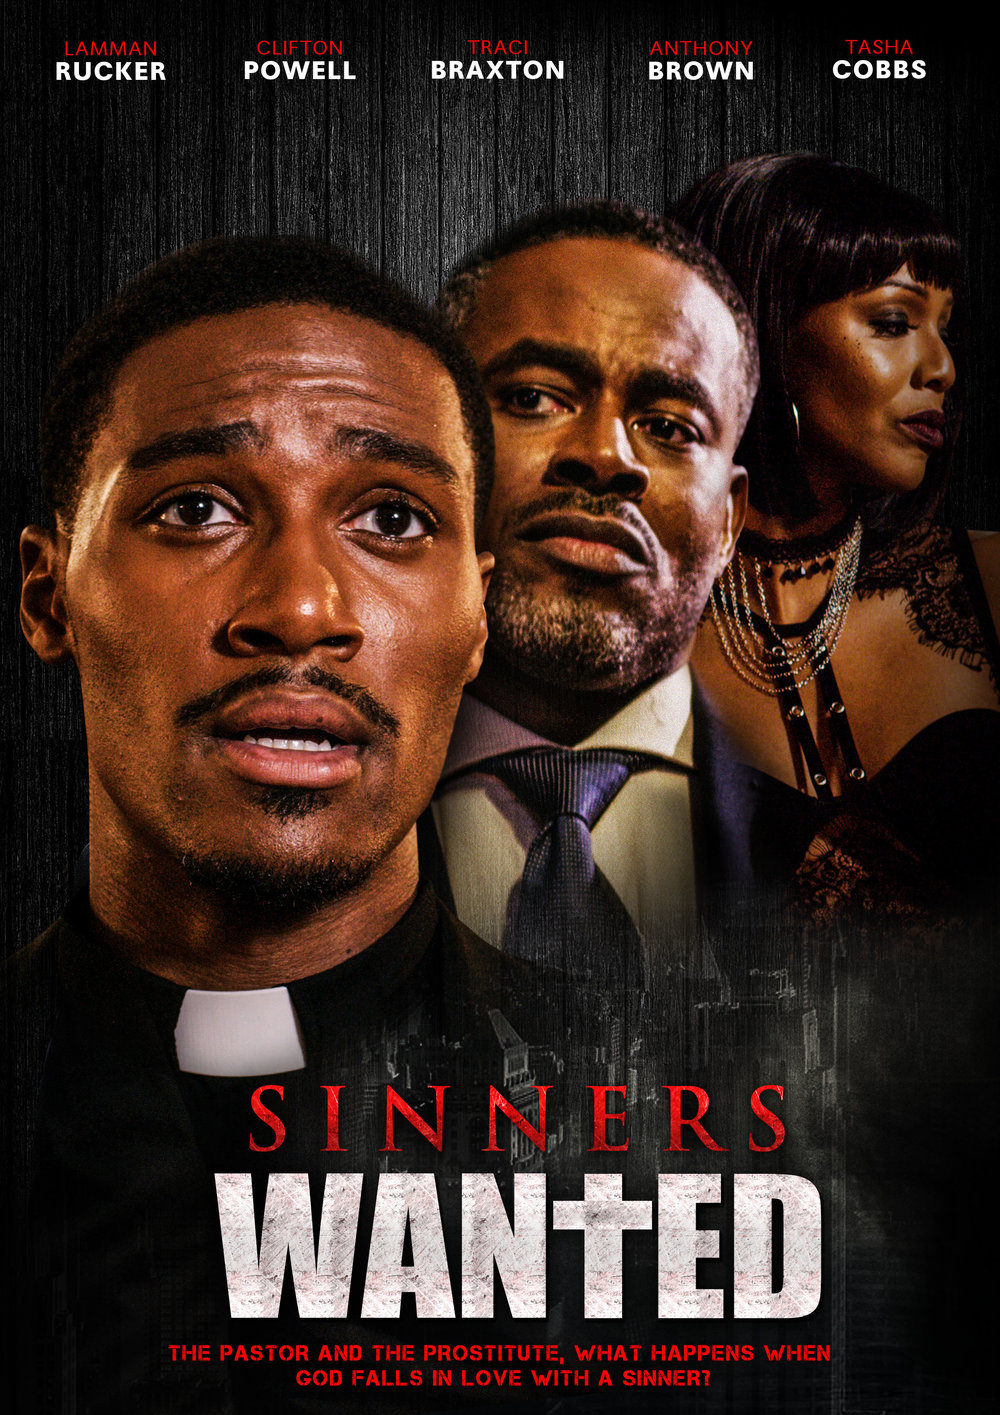 - Sinners Wanted, is a faith based film Produced by Gregory & Kia Freeman of Free Mind TV & Films in association with Megamind Media and Jenk Ink. An unconventional pastor is ridiculed by his hypocritical church congregation after he rescues an unforgiven prostitute.